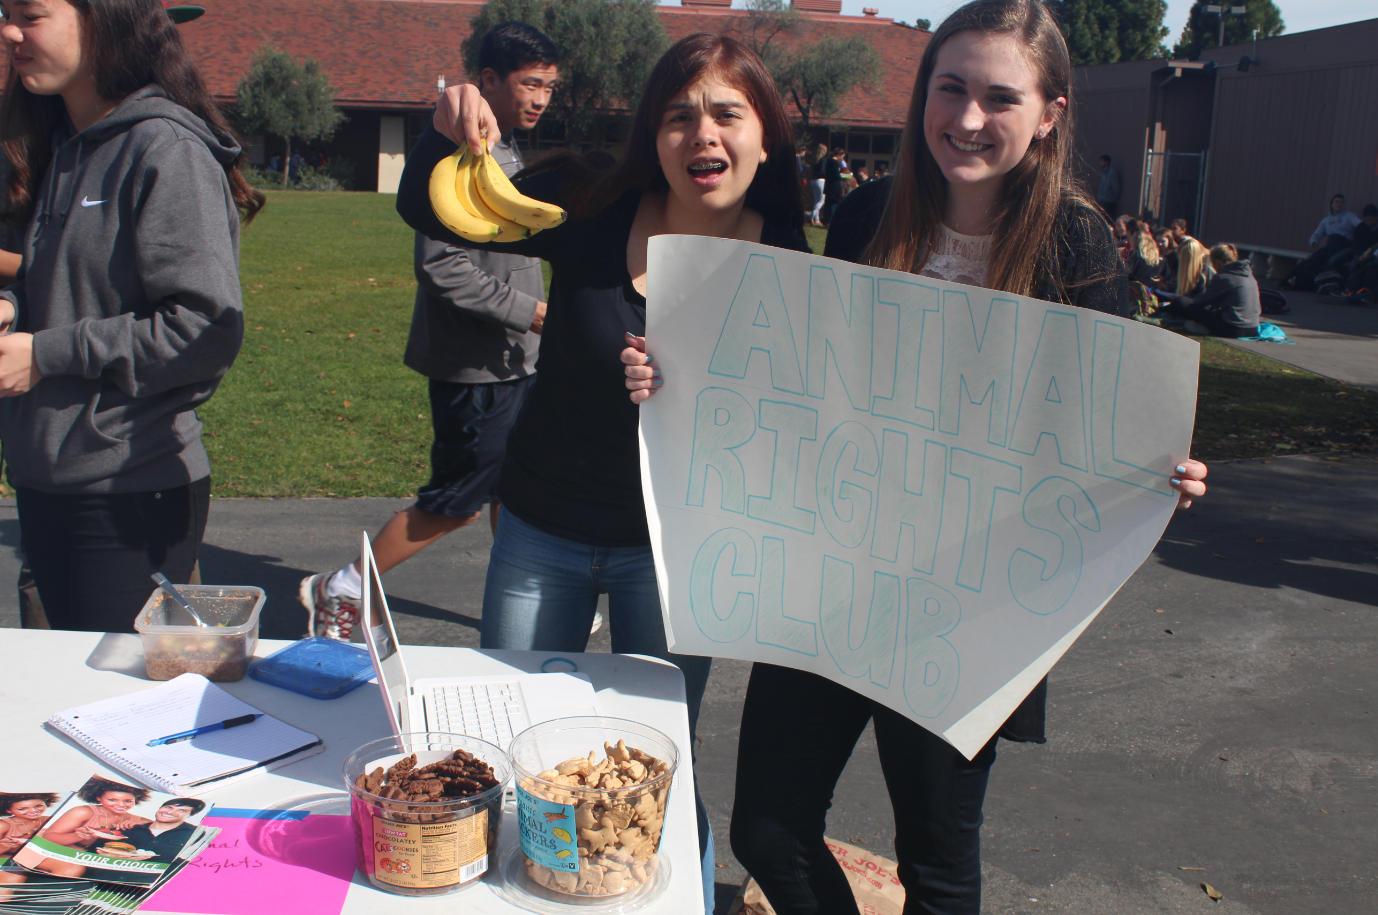 Junior club founders Chelsea McIntosh and Danielle Bisbee advertise for their club, which urges students to stand up against animal cruelty.